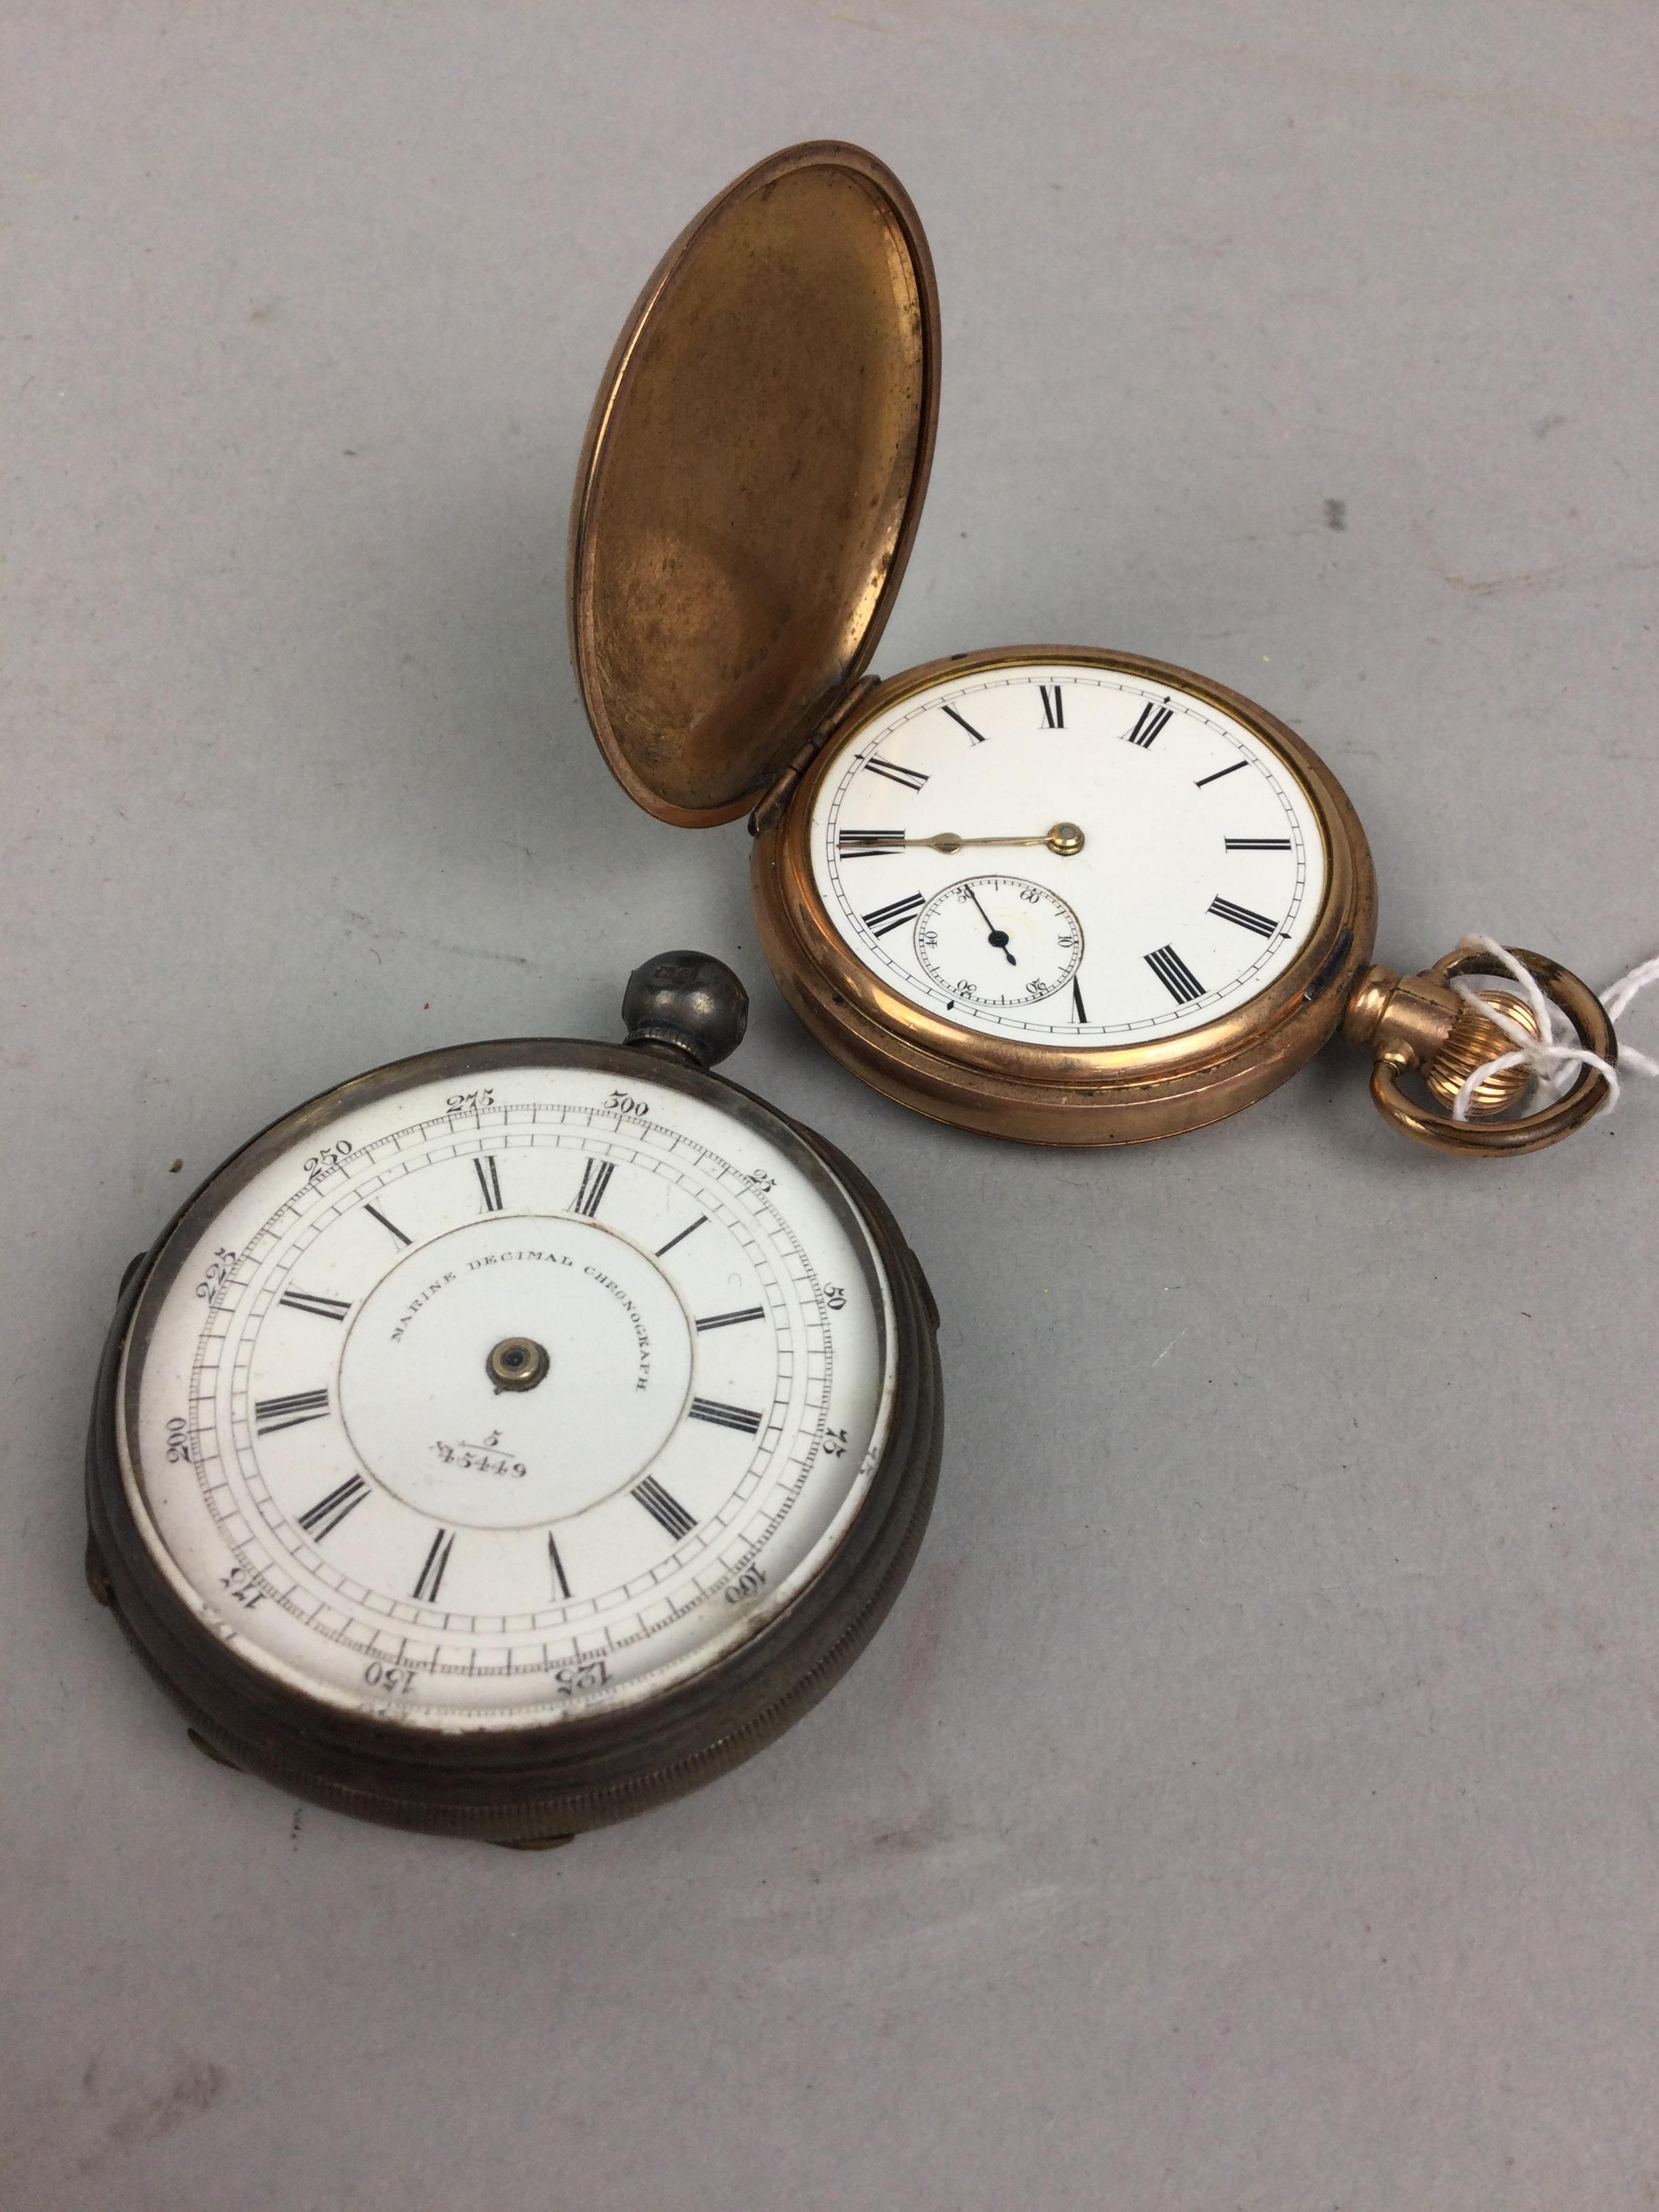 A SILVER POCKET WATCH AND A GOLD PLATED POCKET WATCH